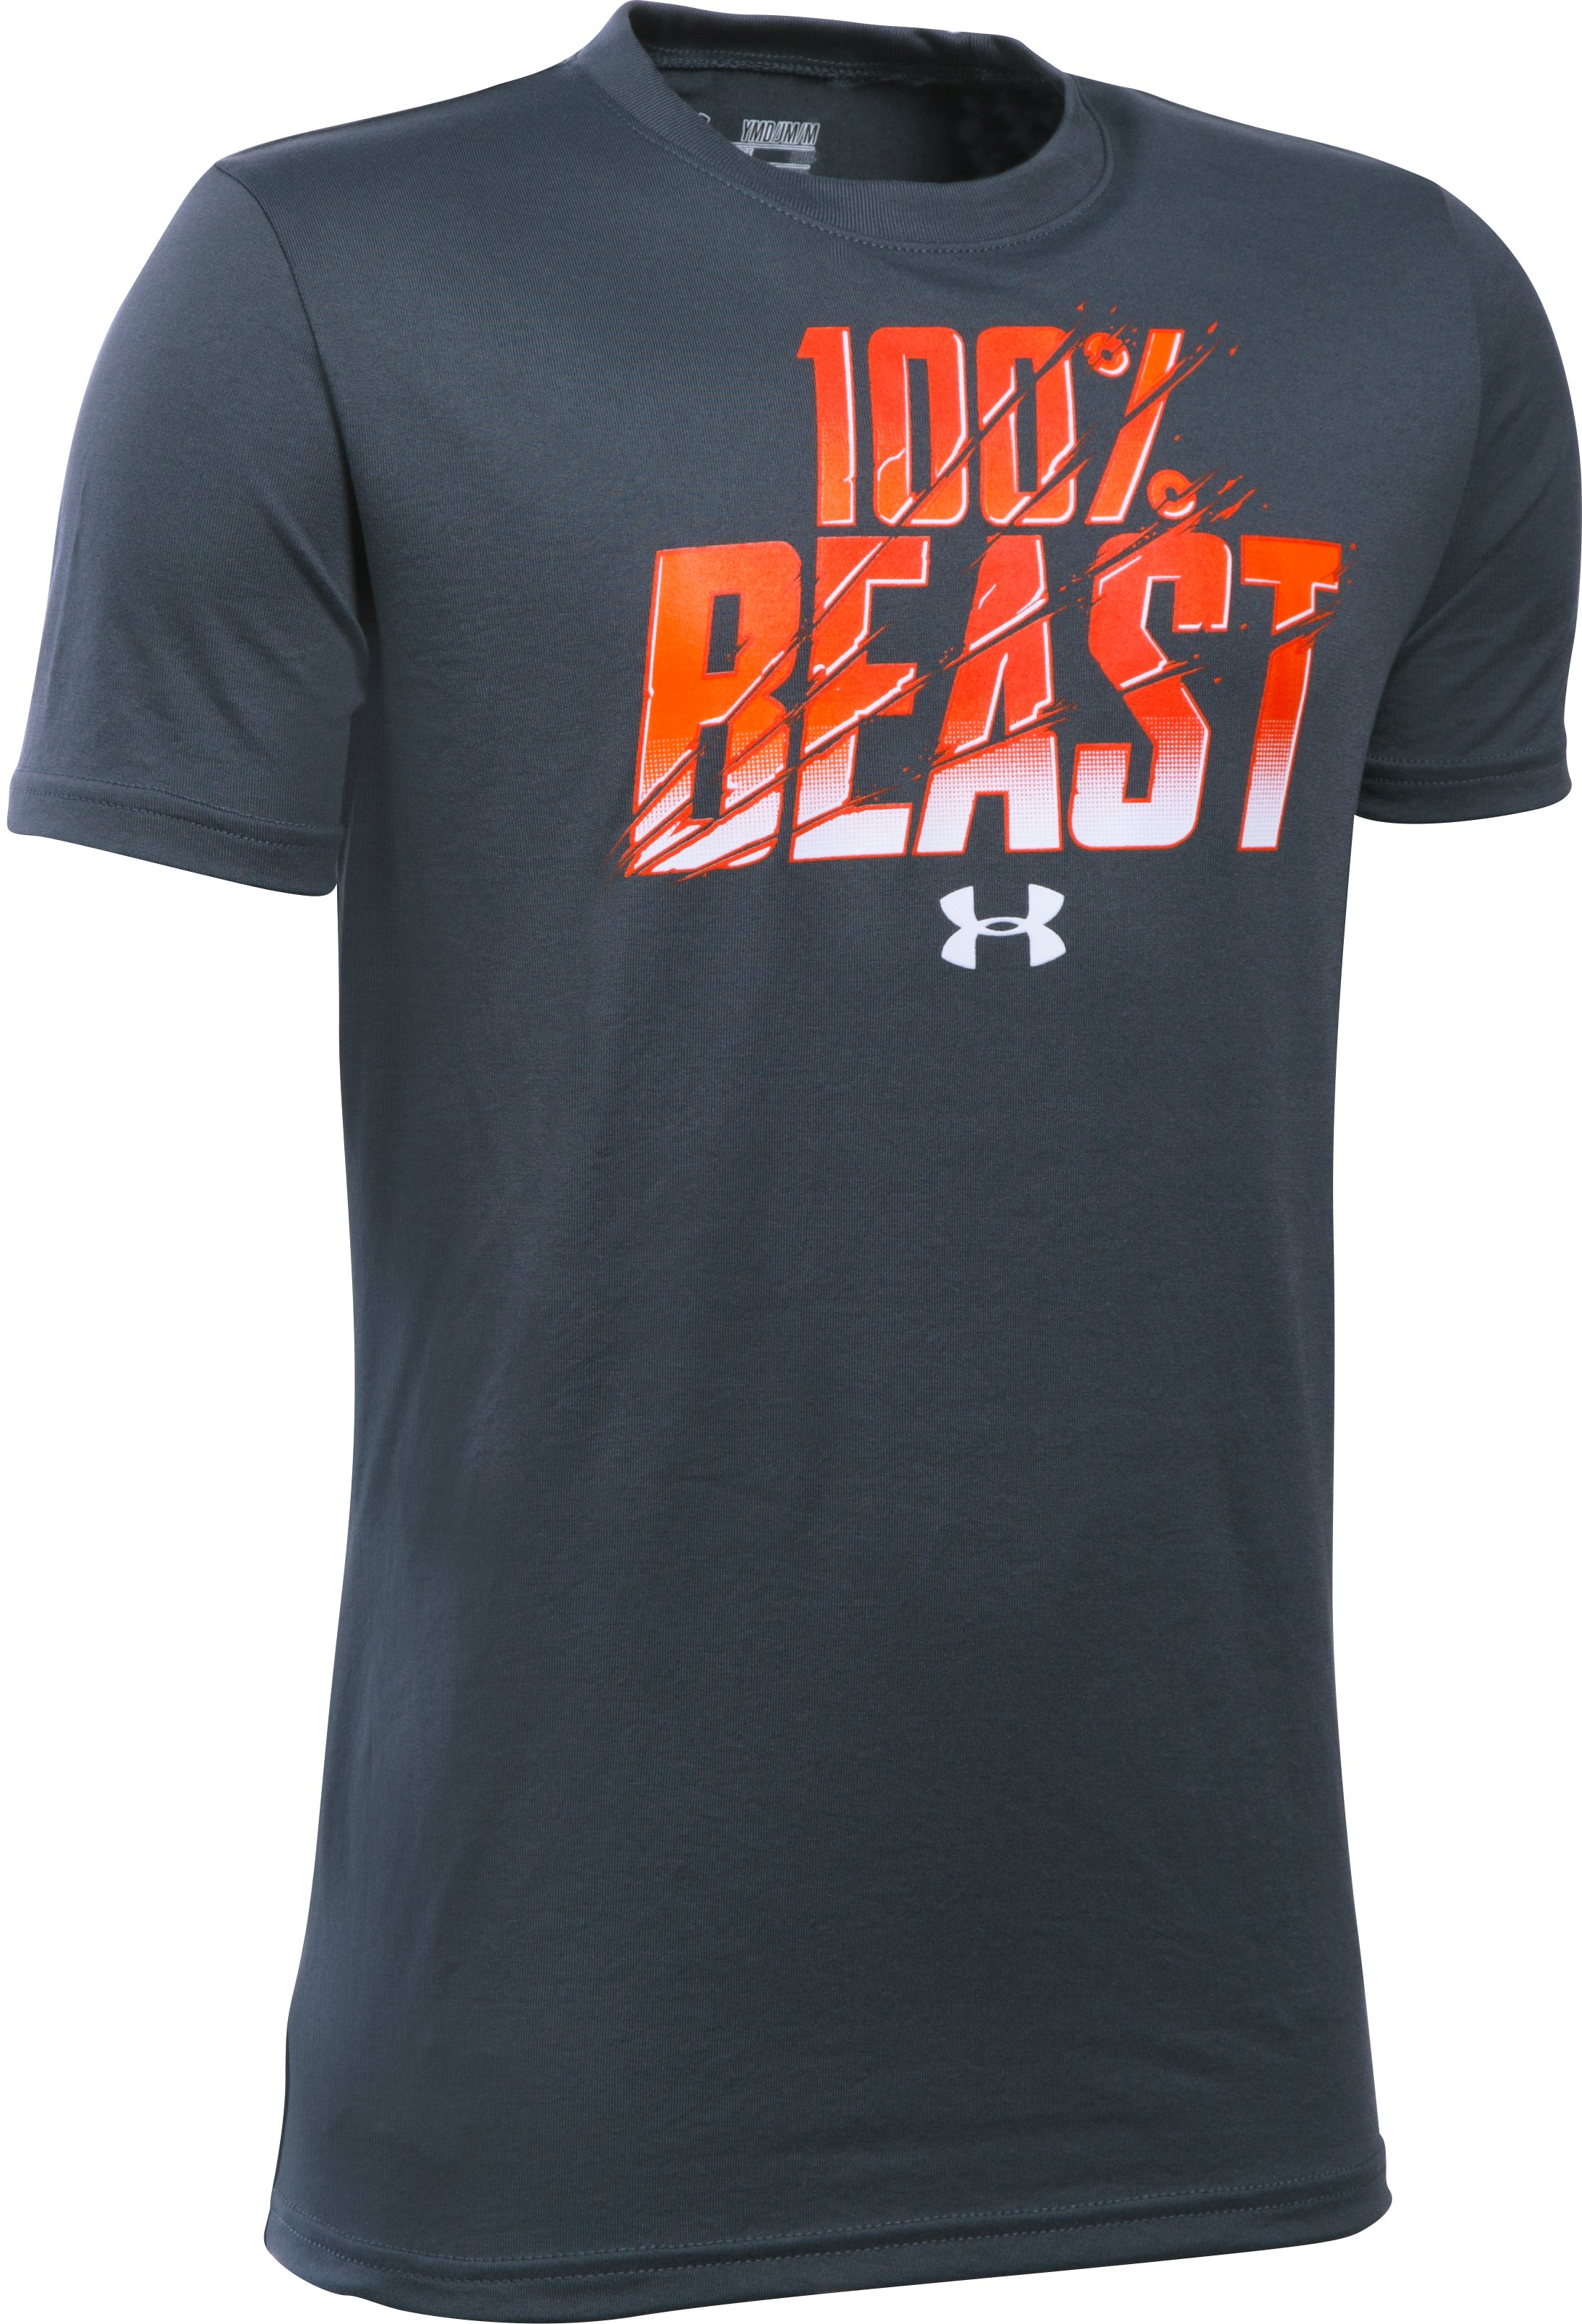 Boys' UA Unleash The Beast T-Shirt, STEALTH GRAY